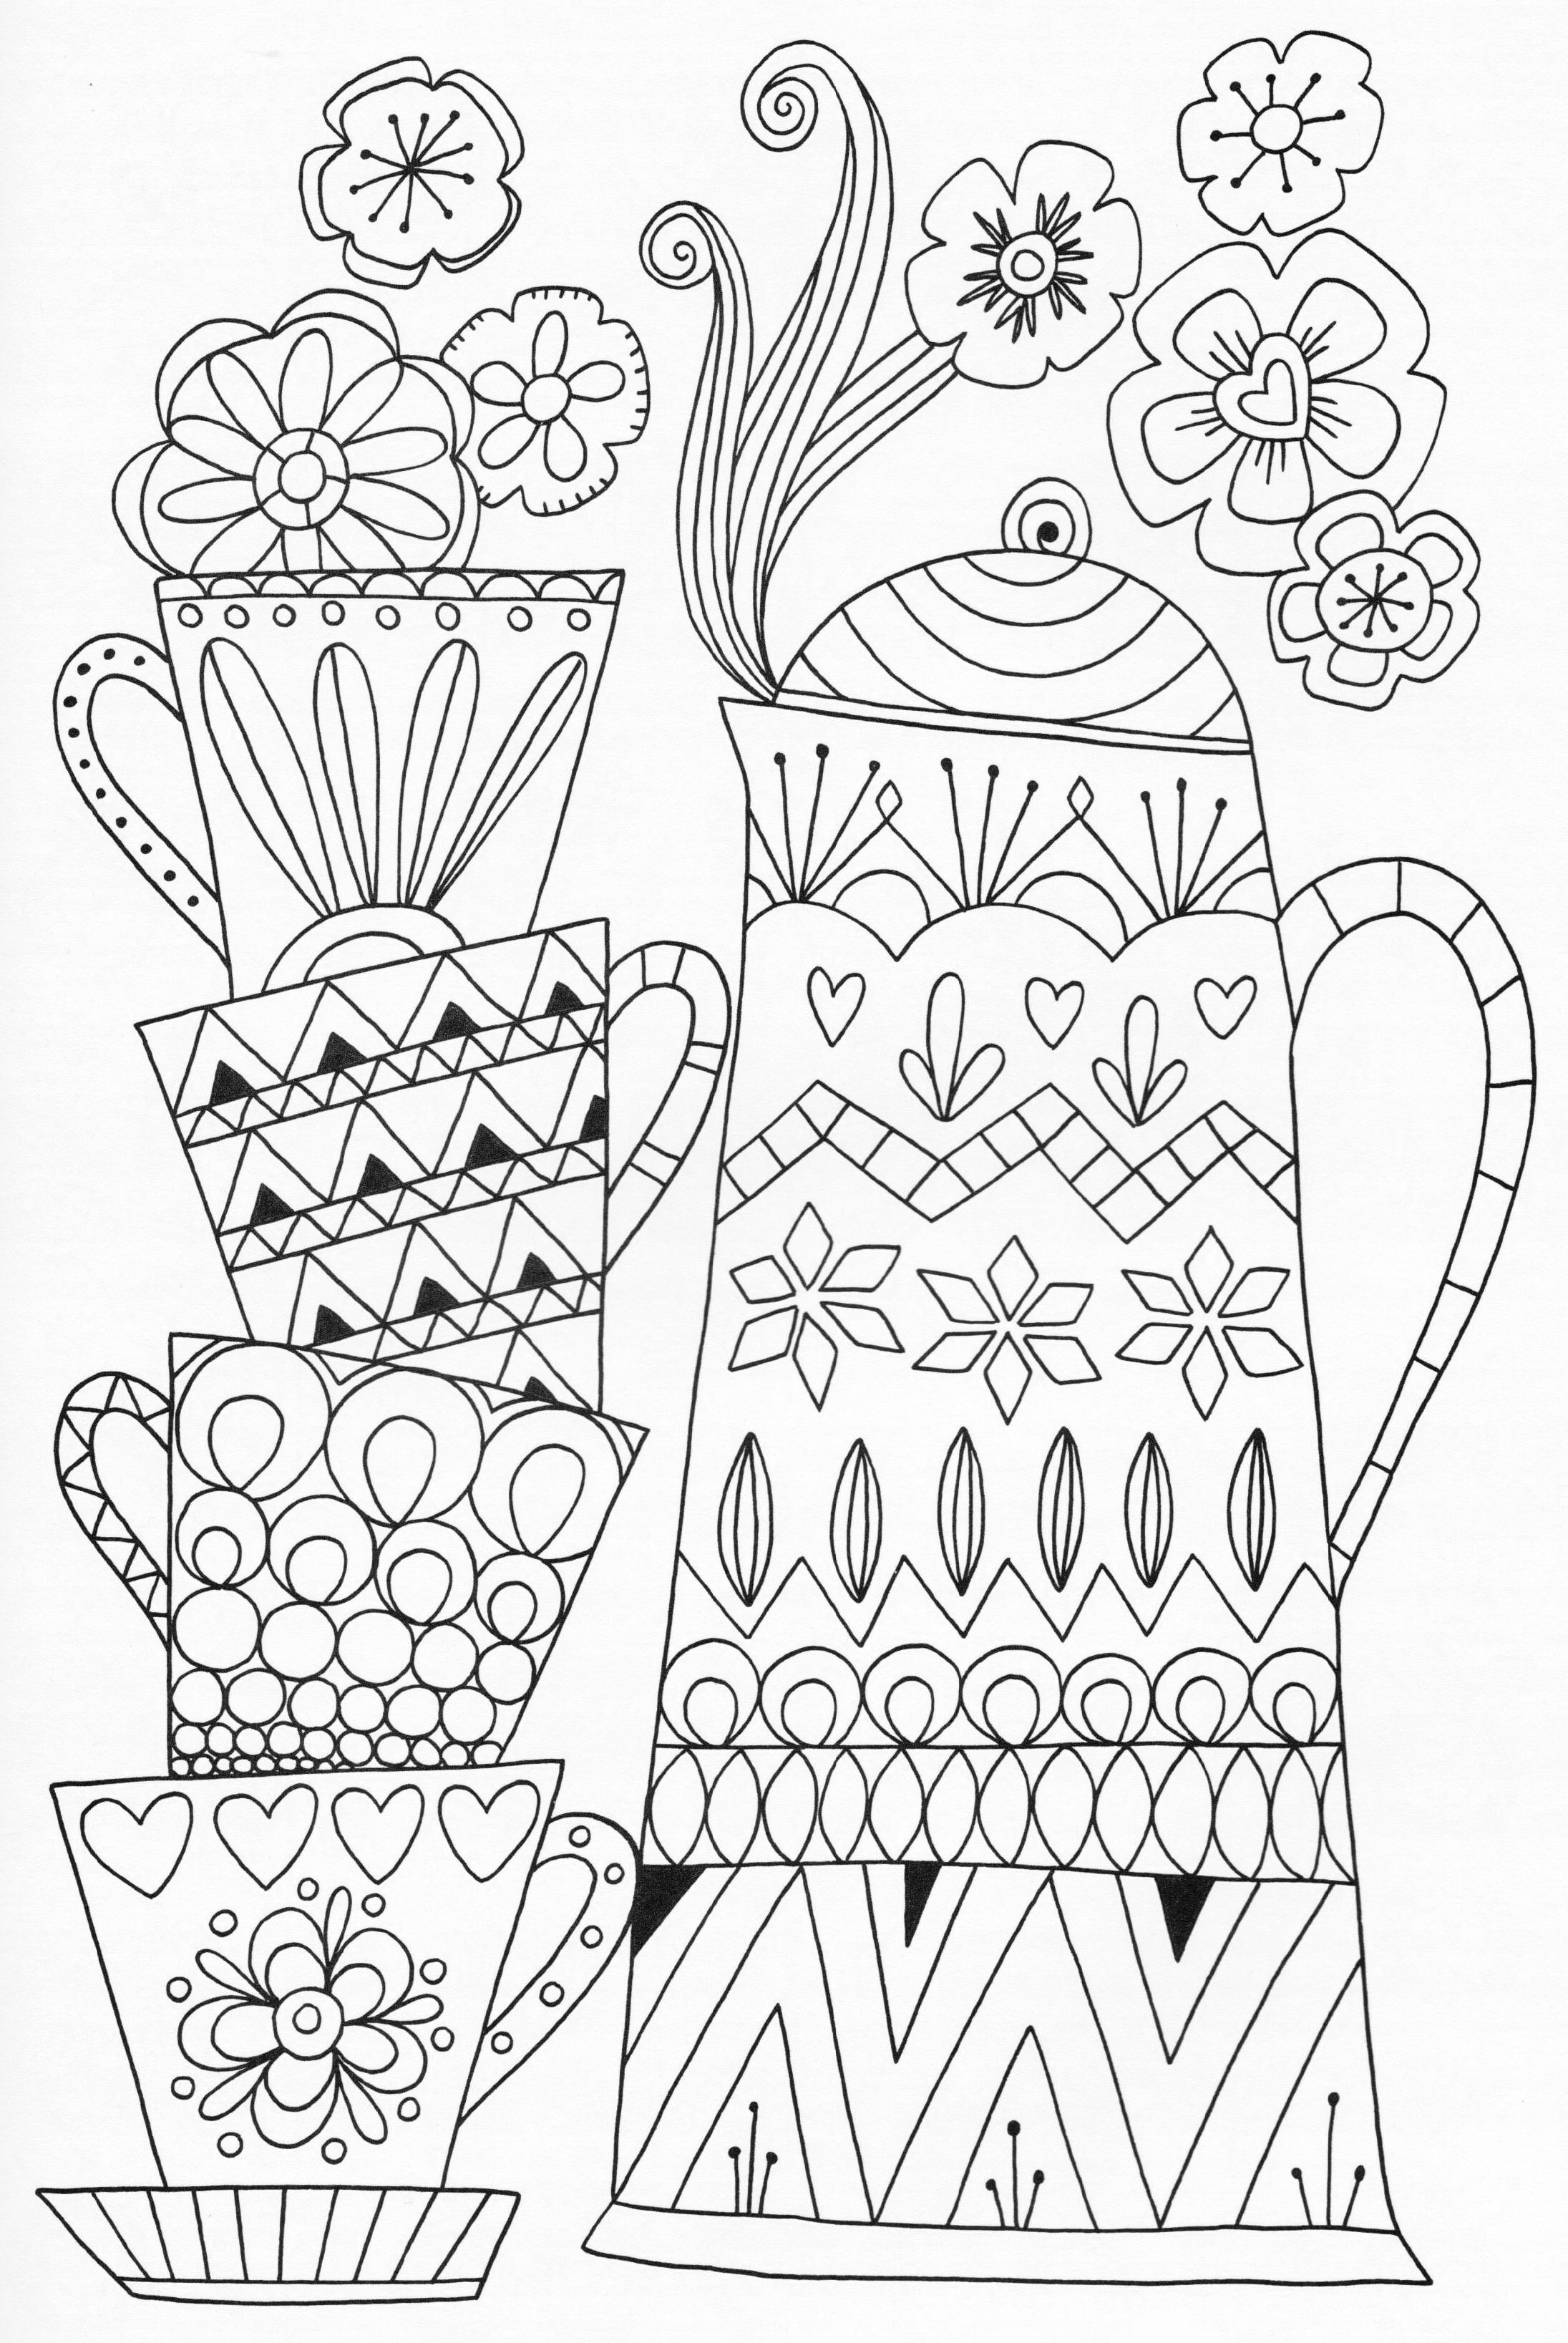 Image Result For Mary Engelbreit Coloring Pages Free Coloring Books Coloring Book Pages Sports Coloring Pages